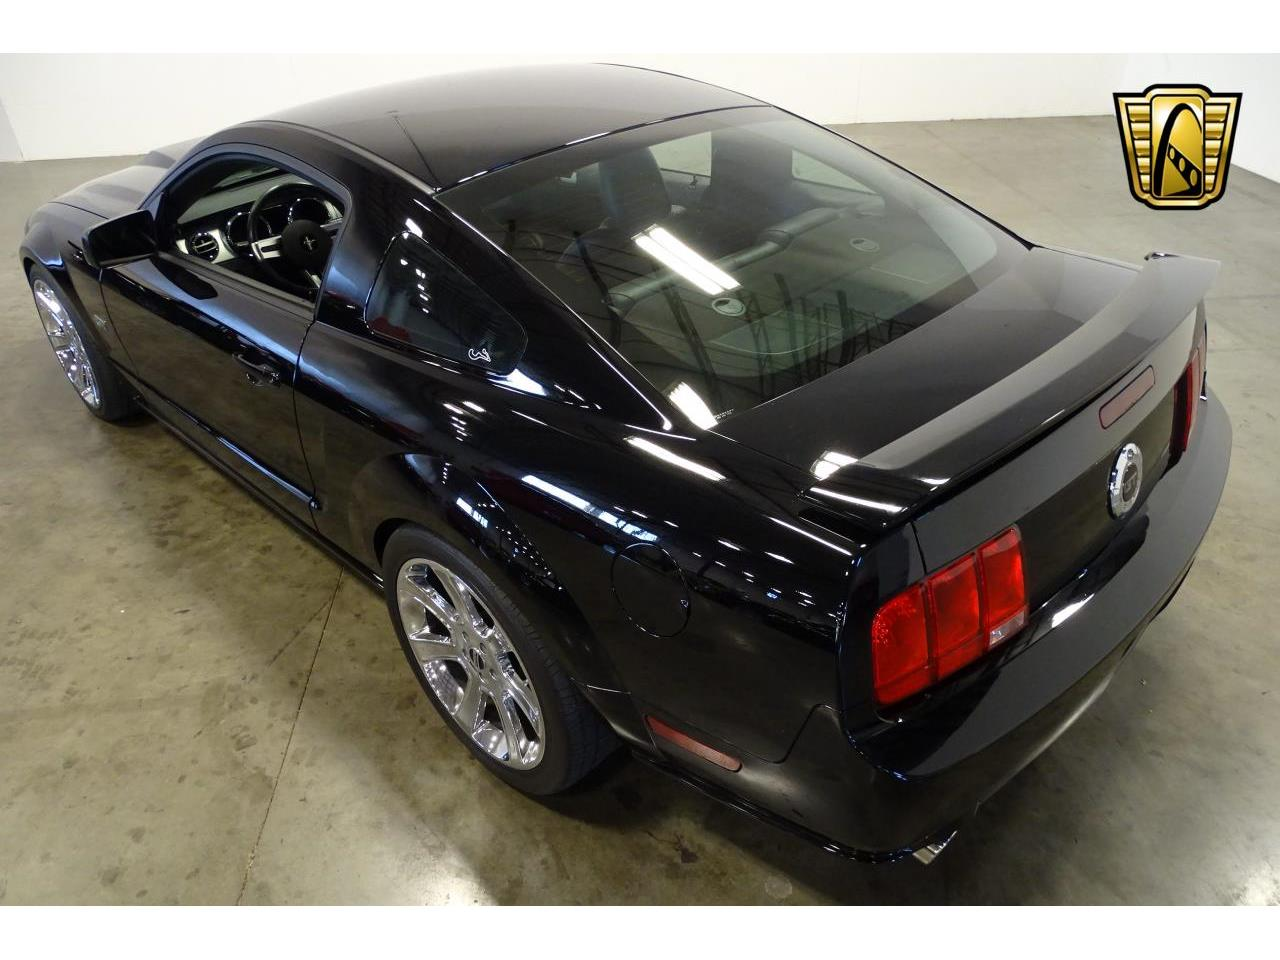 Large Picture of '06 Ford Mustang - $15,595.00 Offered by Gateway Classic Cars - Nashville - MFDI